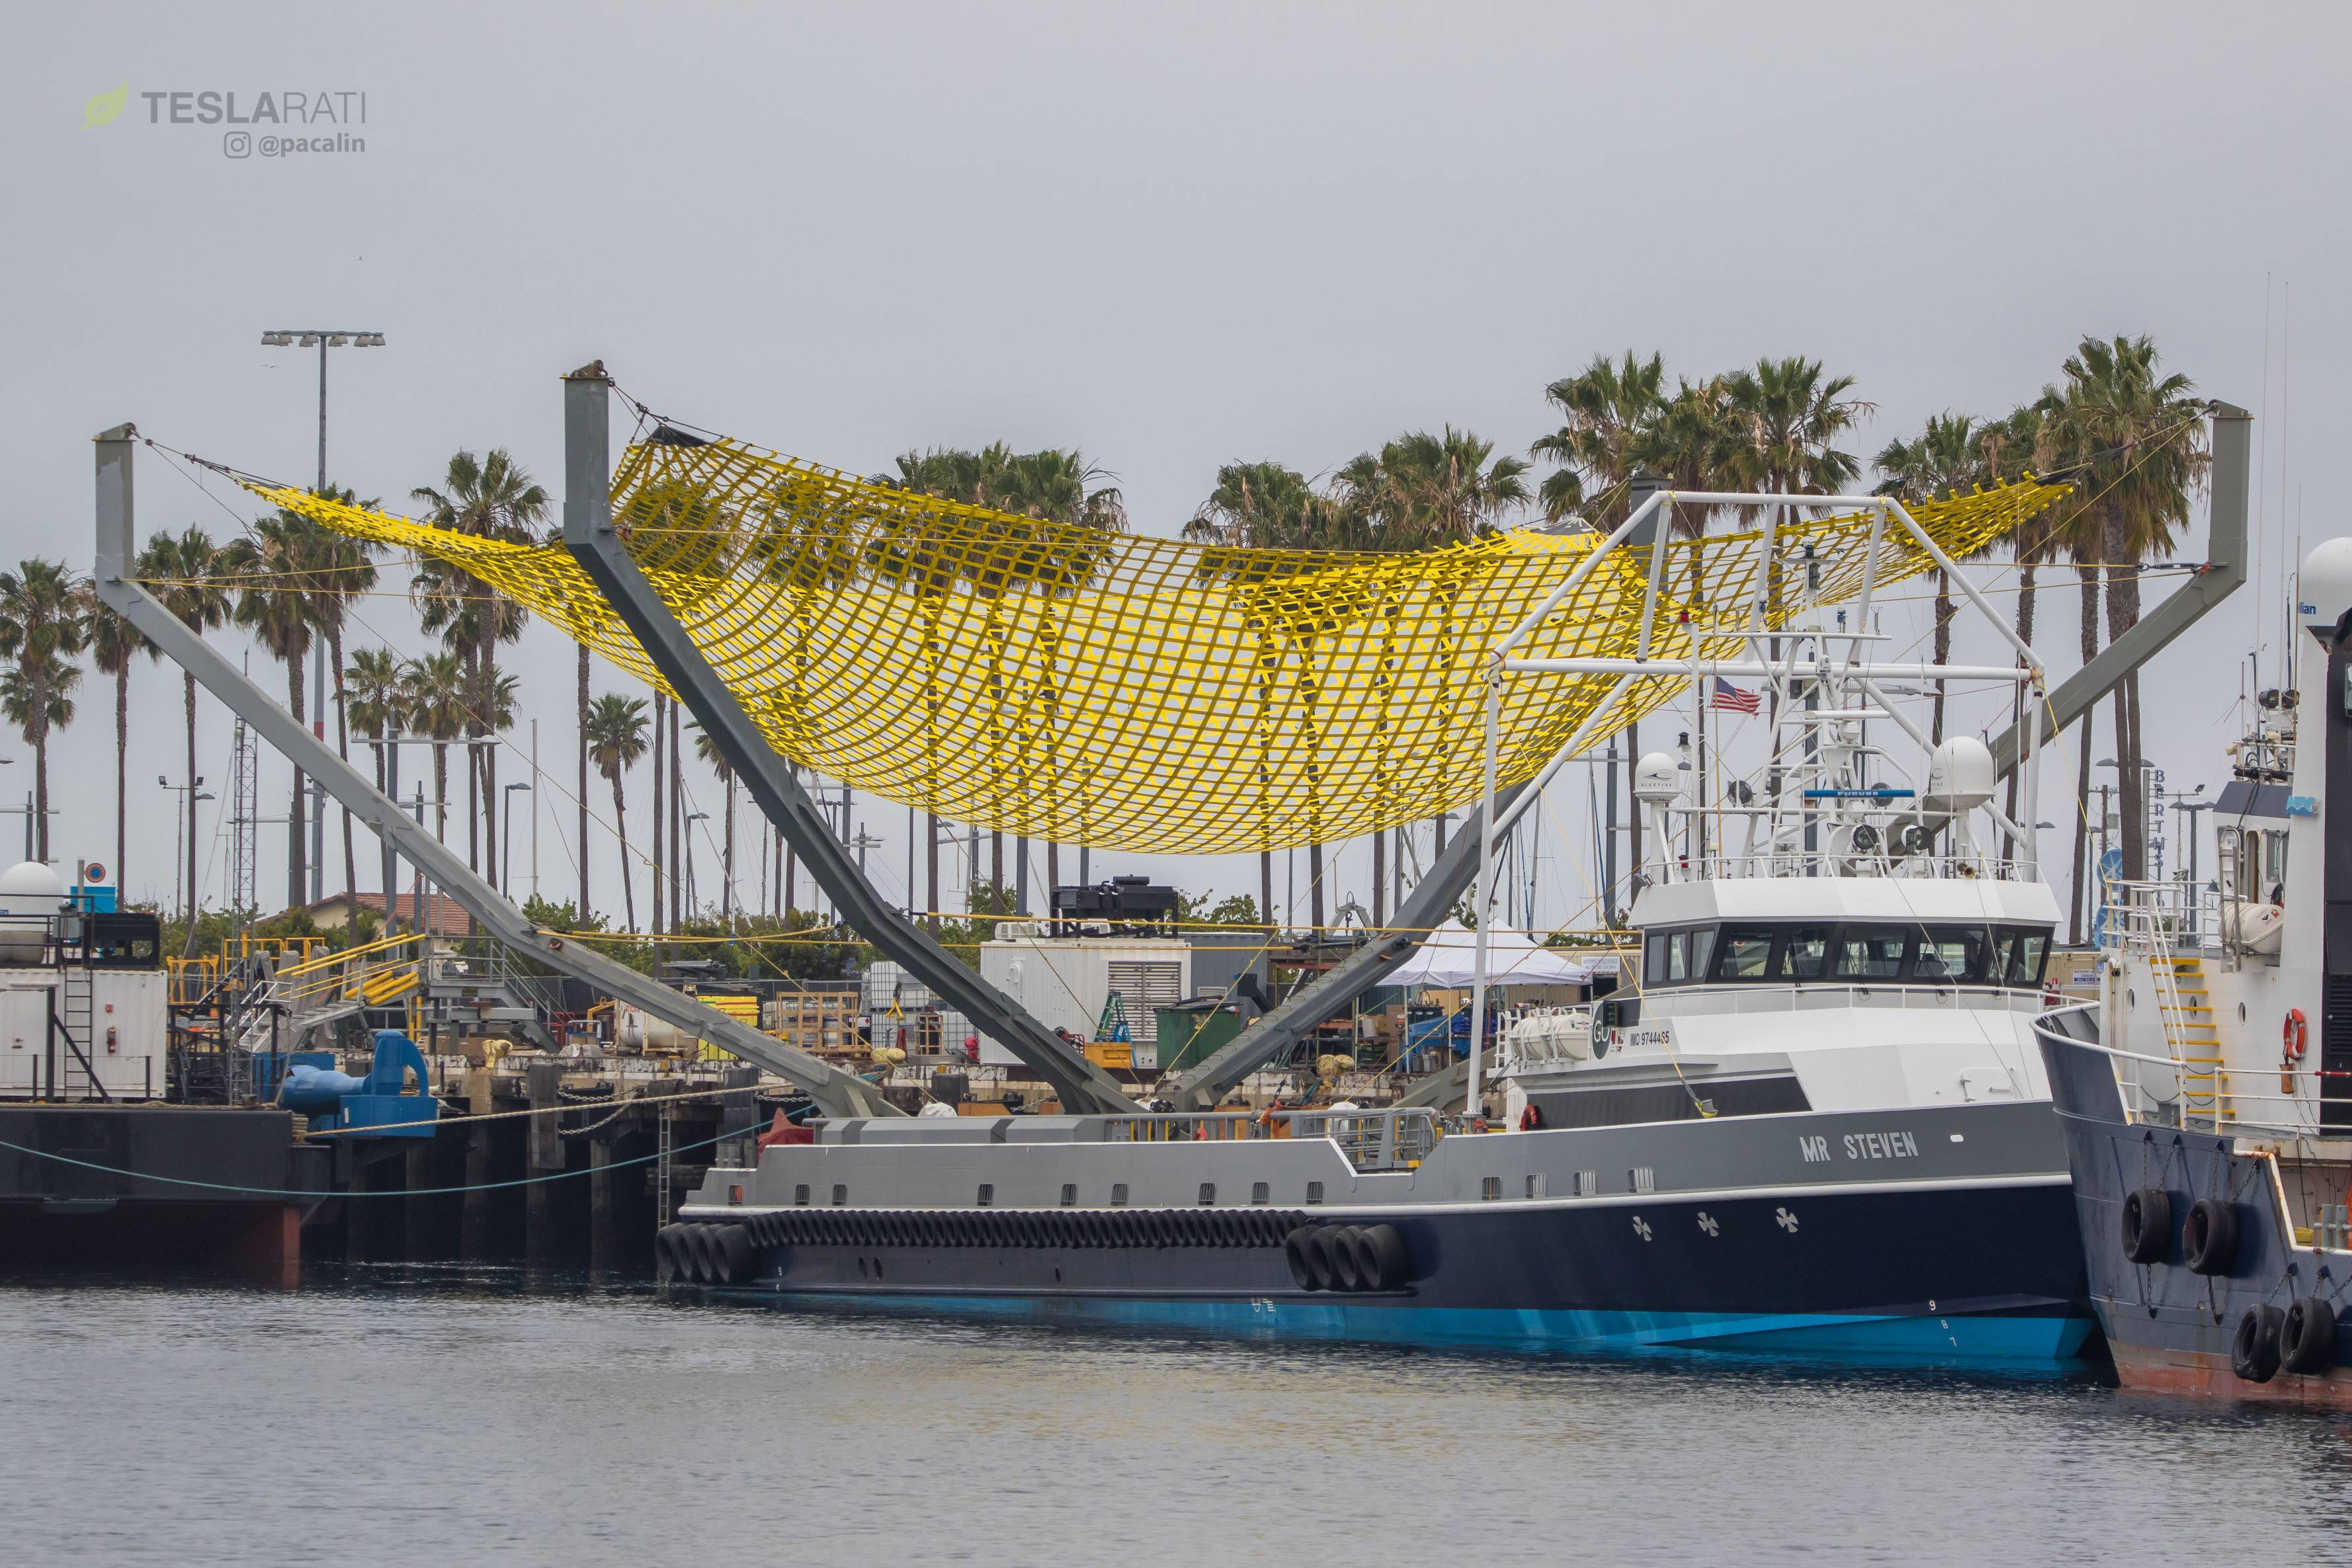 Spacex S Recovery Boat Mr Steven Has A New Net To Catch